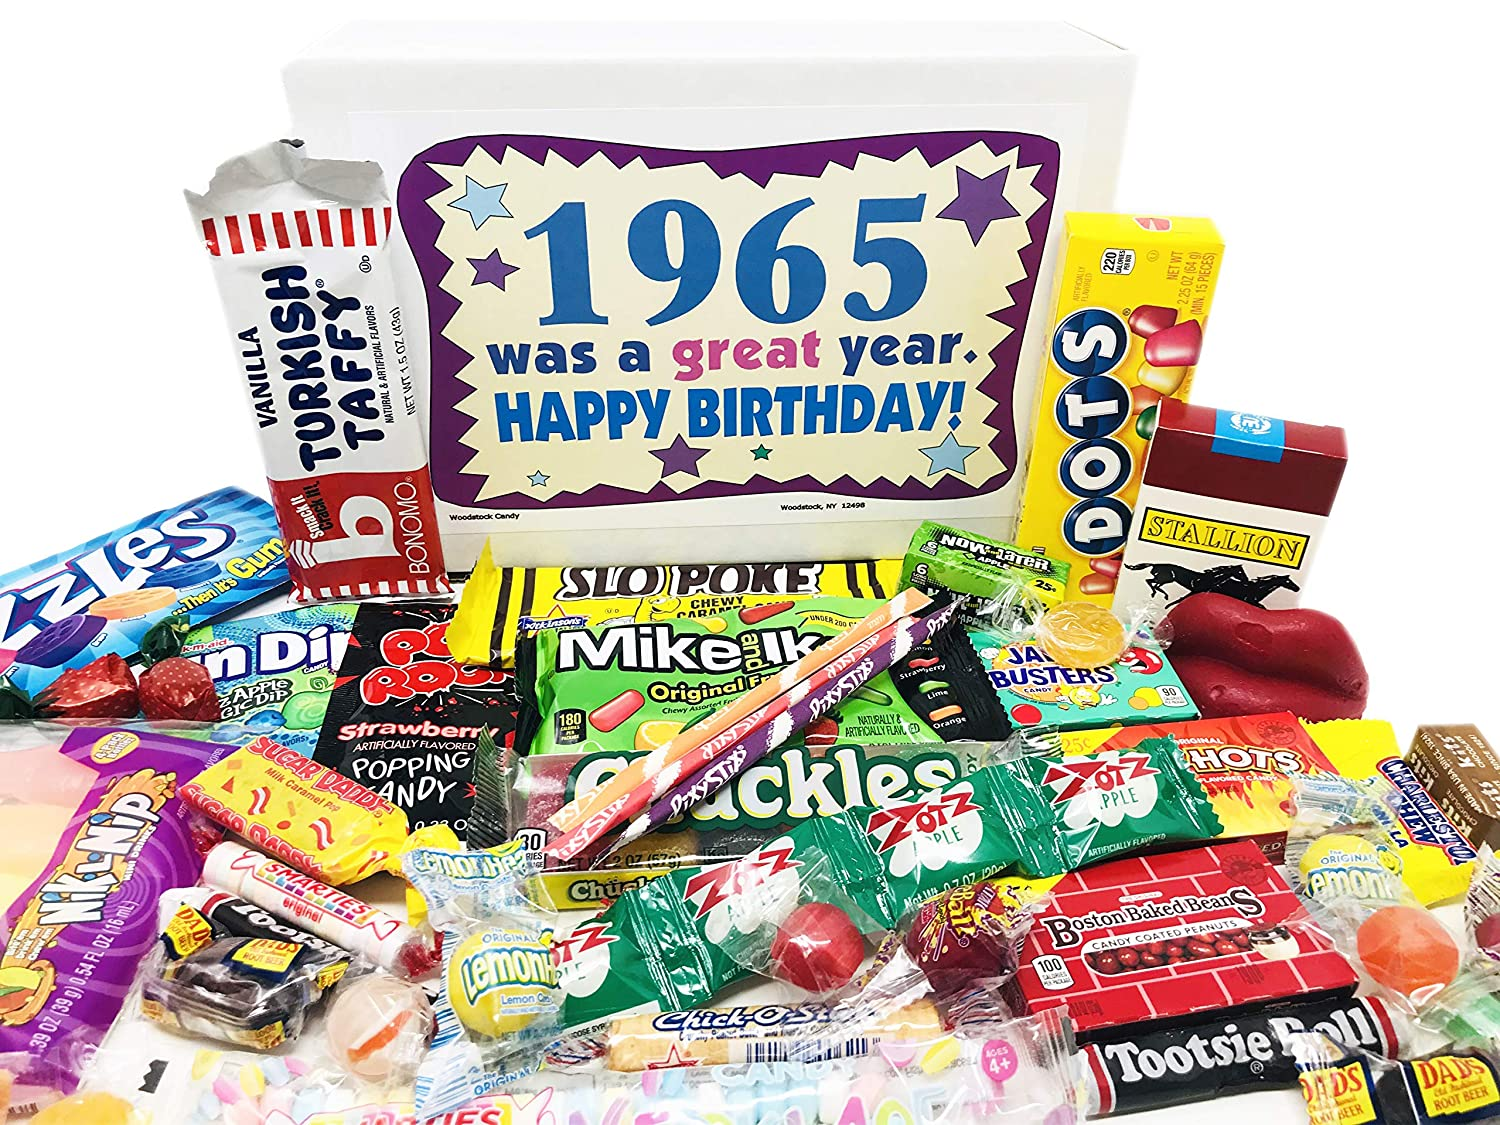 Woodstock Candy ~ 1965 56th Birthday Gift Box Nostalgic Retro Candy Mix from Childhood for 56 Year Old Man or Woman Born 1965 Jr